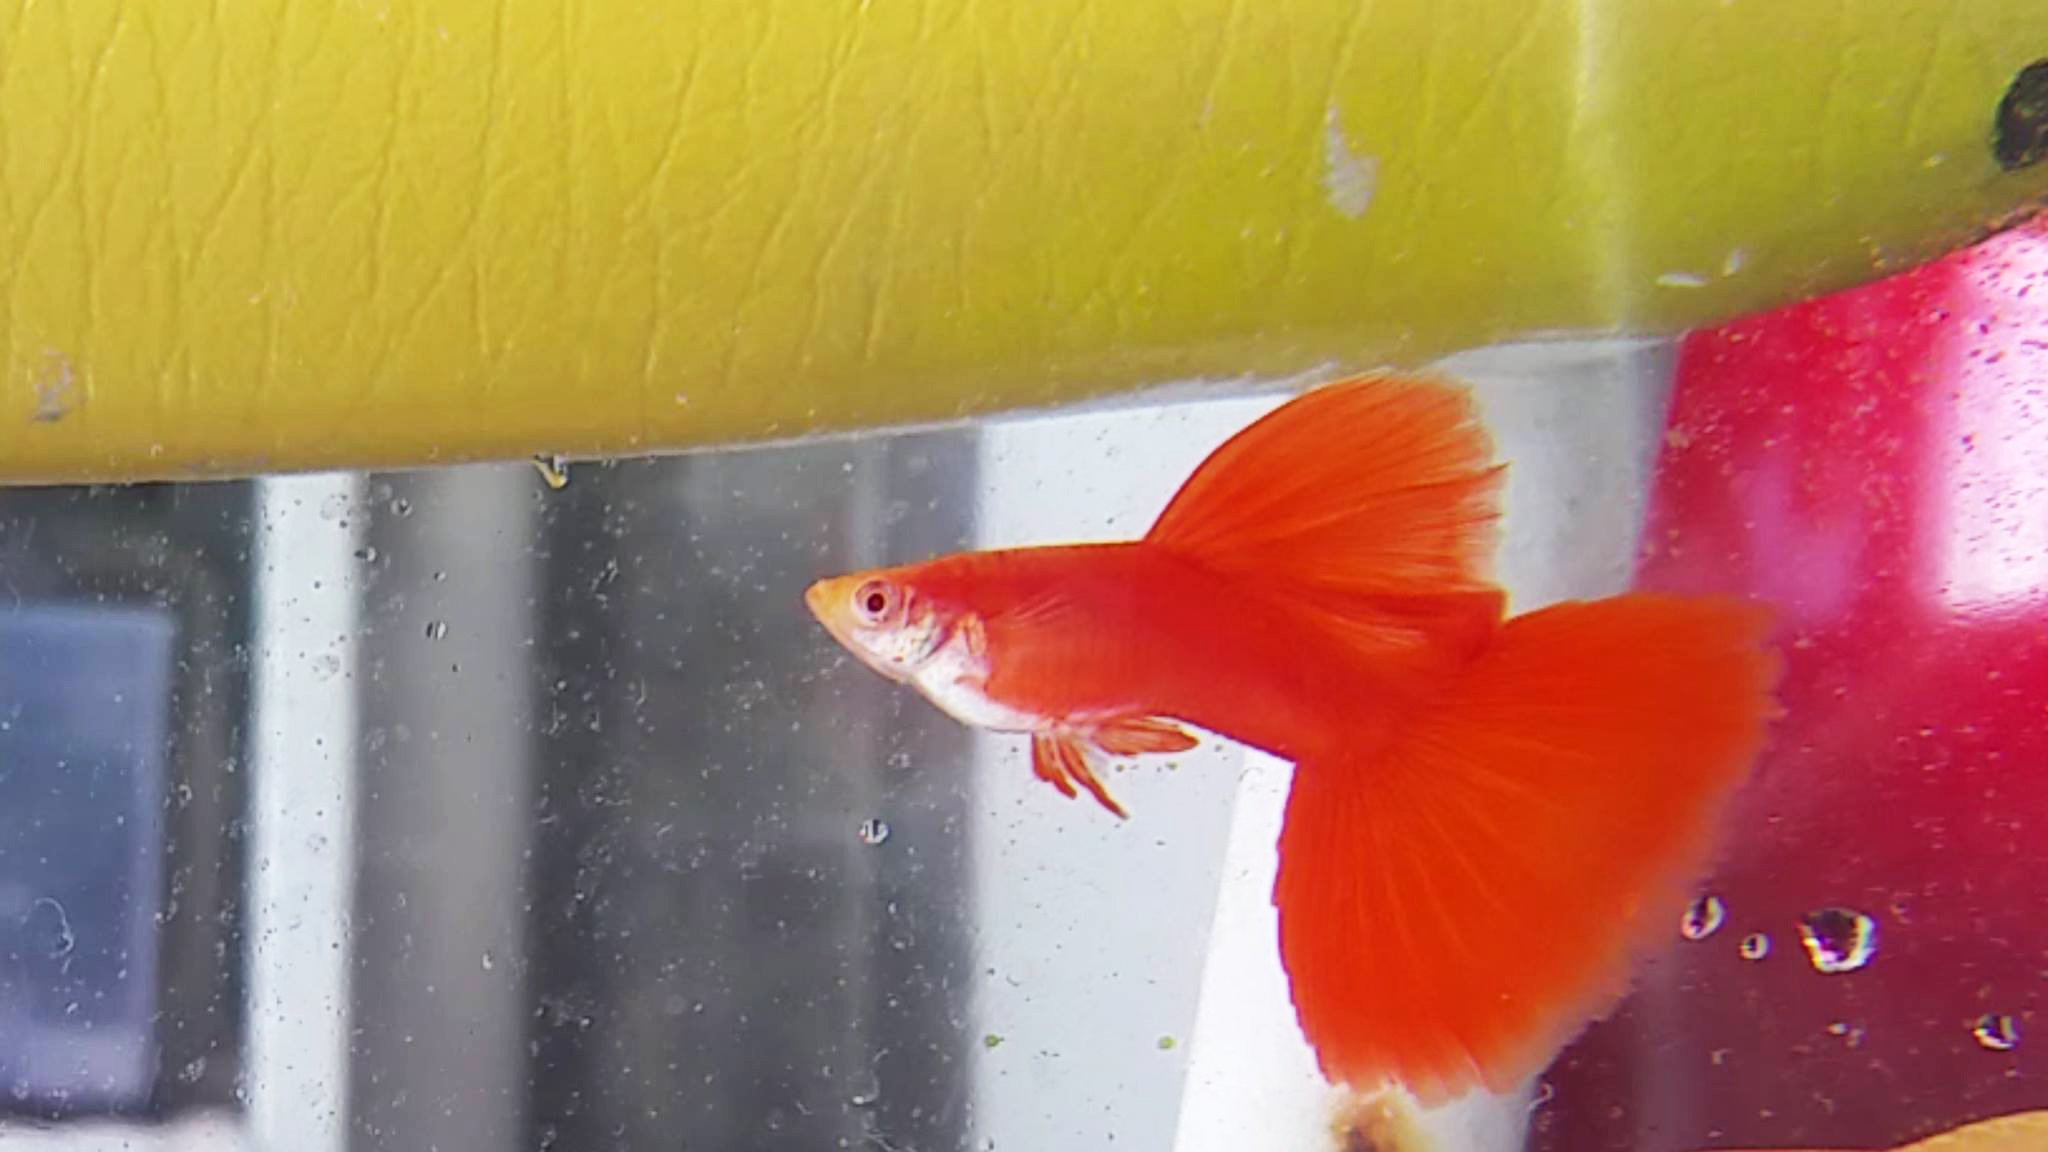 Interview with Alvin Ho, a Singaporean Guppy Breeder Specialising in Albino Full Red Guppies